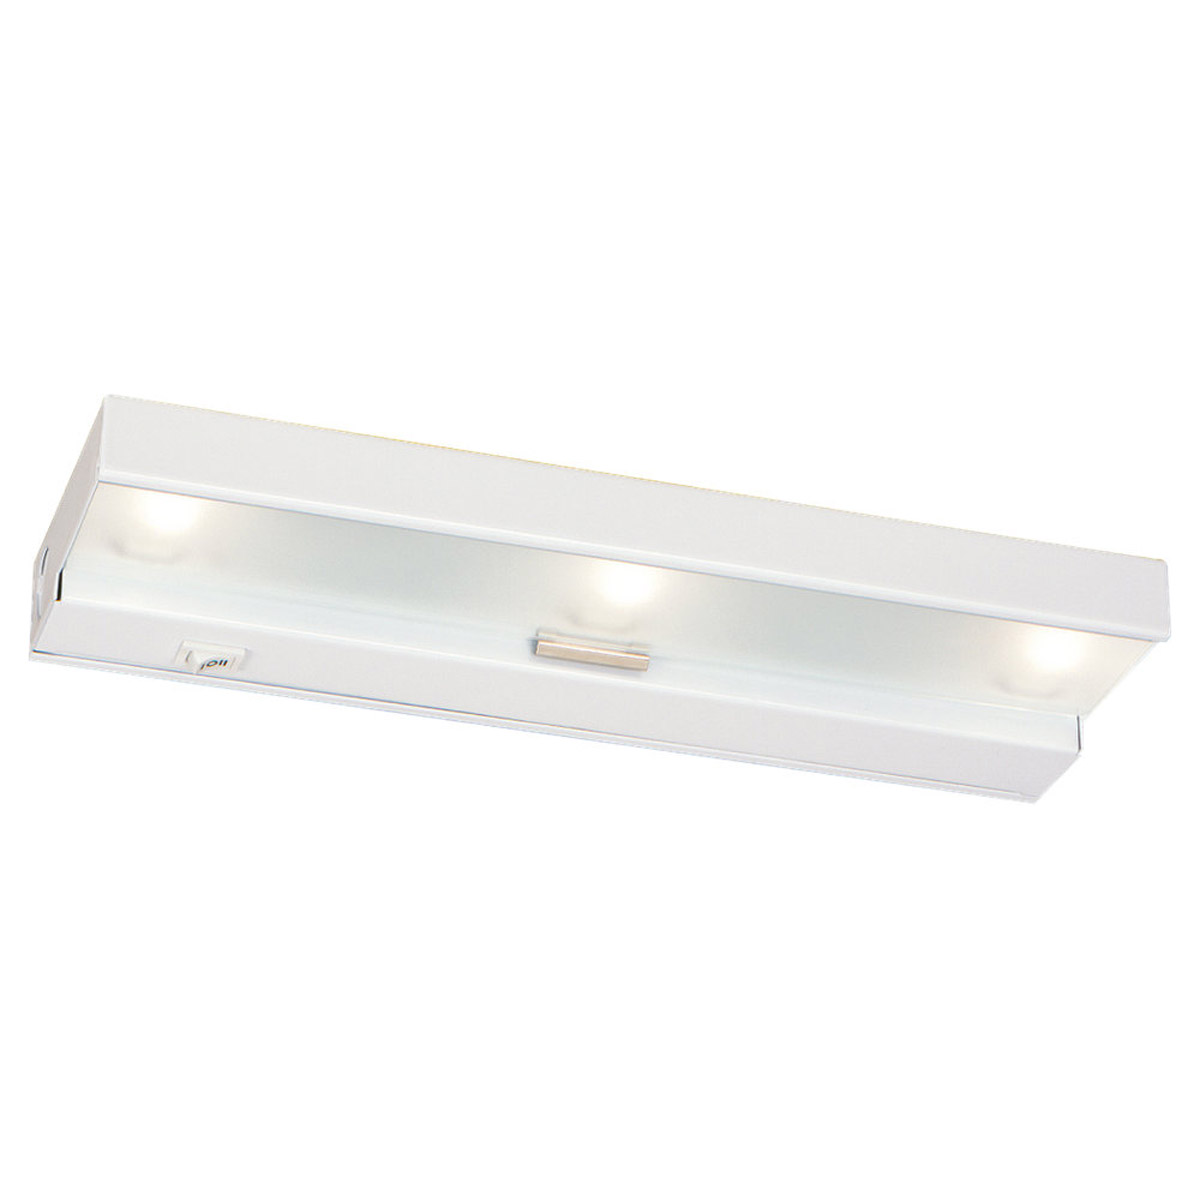 Sea Gull Lighting Ambiance 3 Light Undercabinet Xenon in White 98019-15